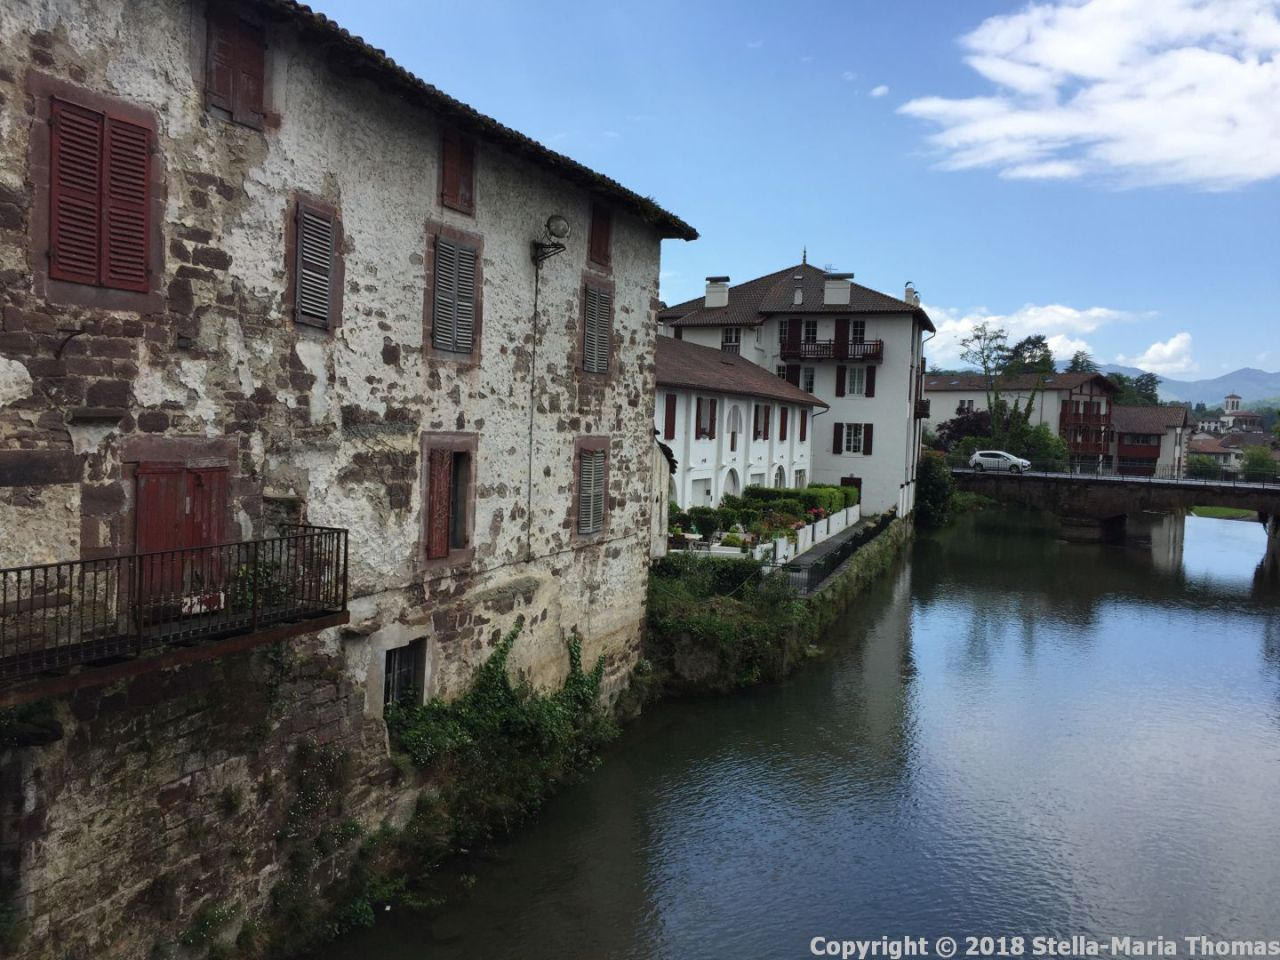 Travel/Food 2018 – French Road Trip, Day 17, Pau, Gan, Saint-Jean-Pied-de-Port, Larrabetzu, Amorebieta